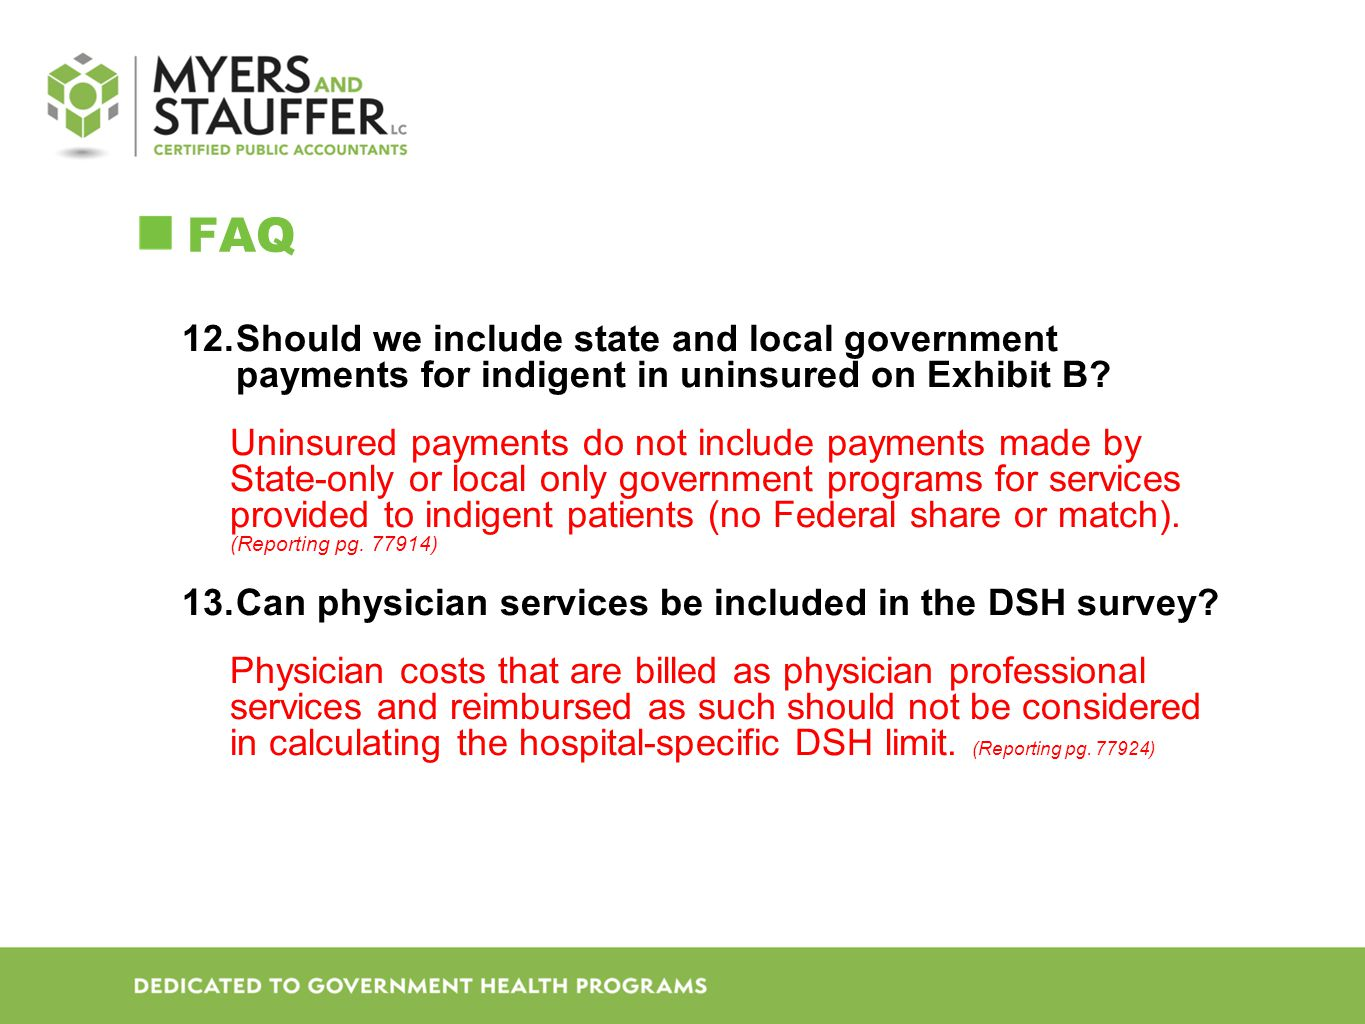 FAQ Should we include state and local government payments for indigent in uninsured on Exhibit B